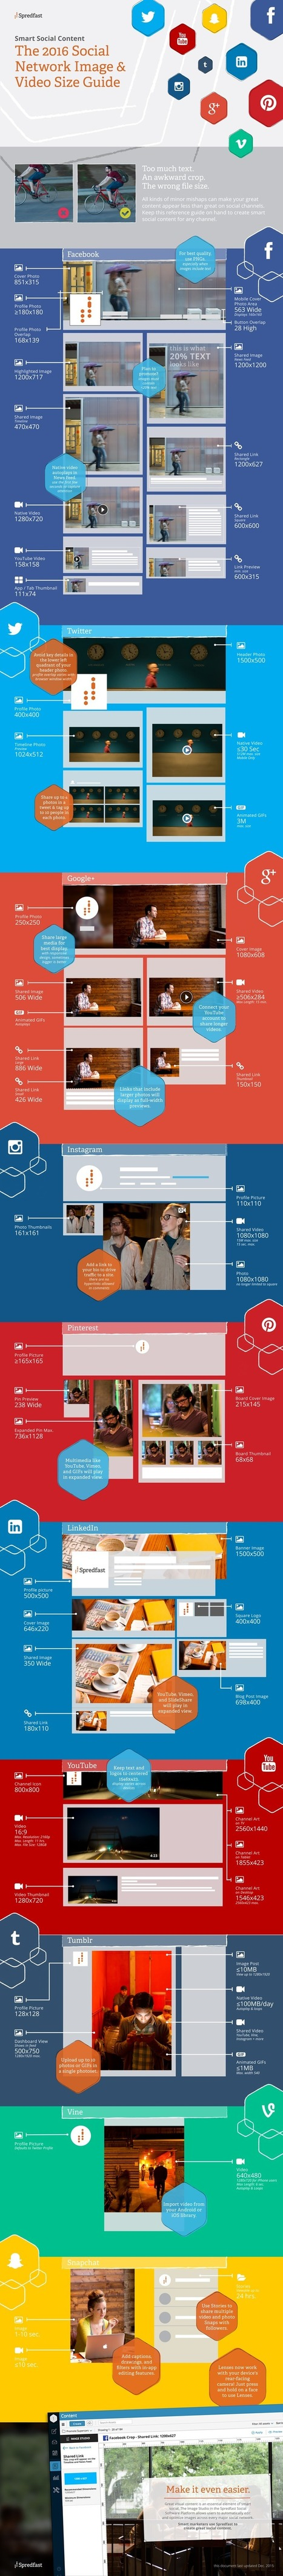 Infographic: Social Network Image & Video Size Guide   Digital Marketing & E-Commerce   Scoop.it